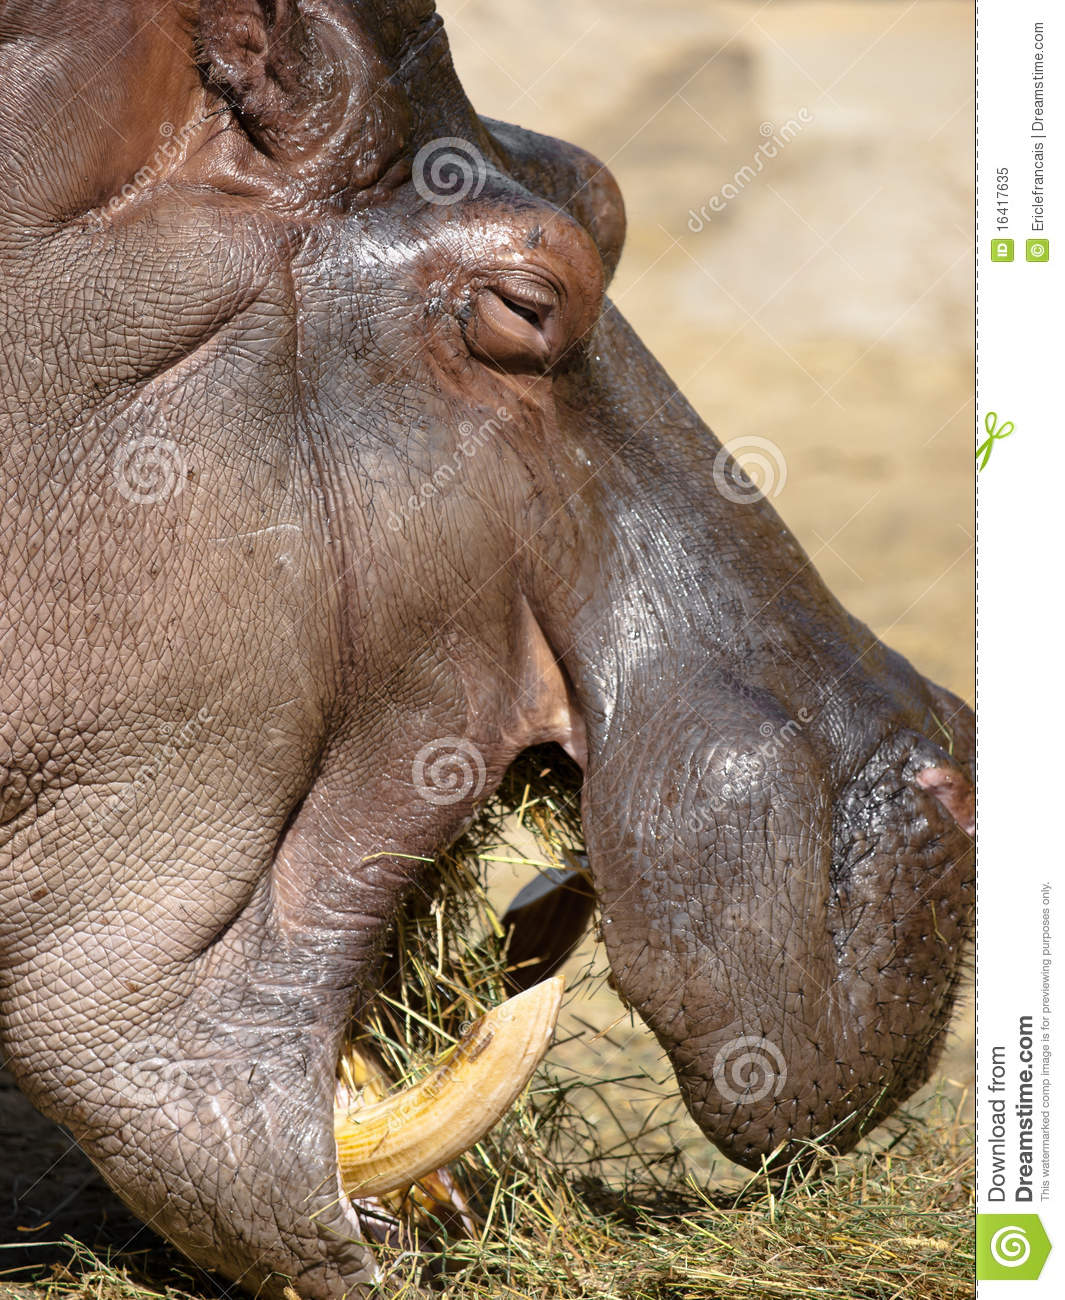 CURIOUS FACTS CONTEST #6: Interesting Facts about Hippos ... |Hippo Eating Grass